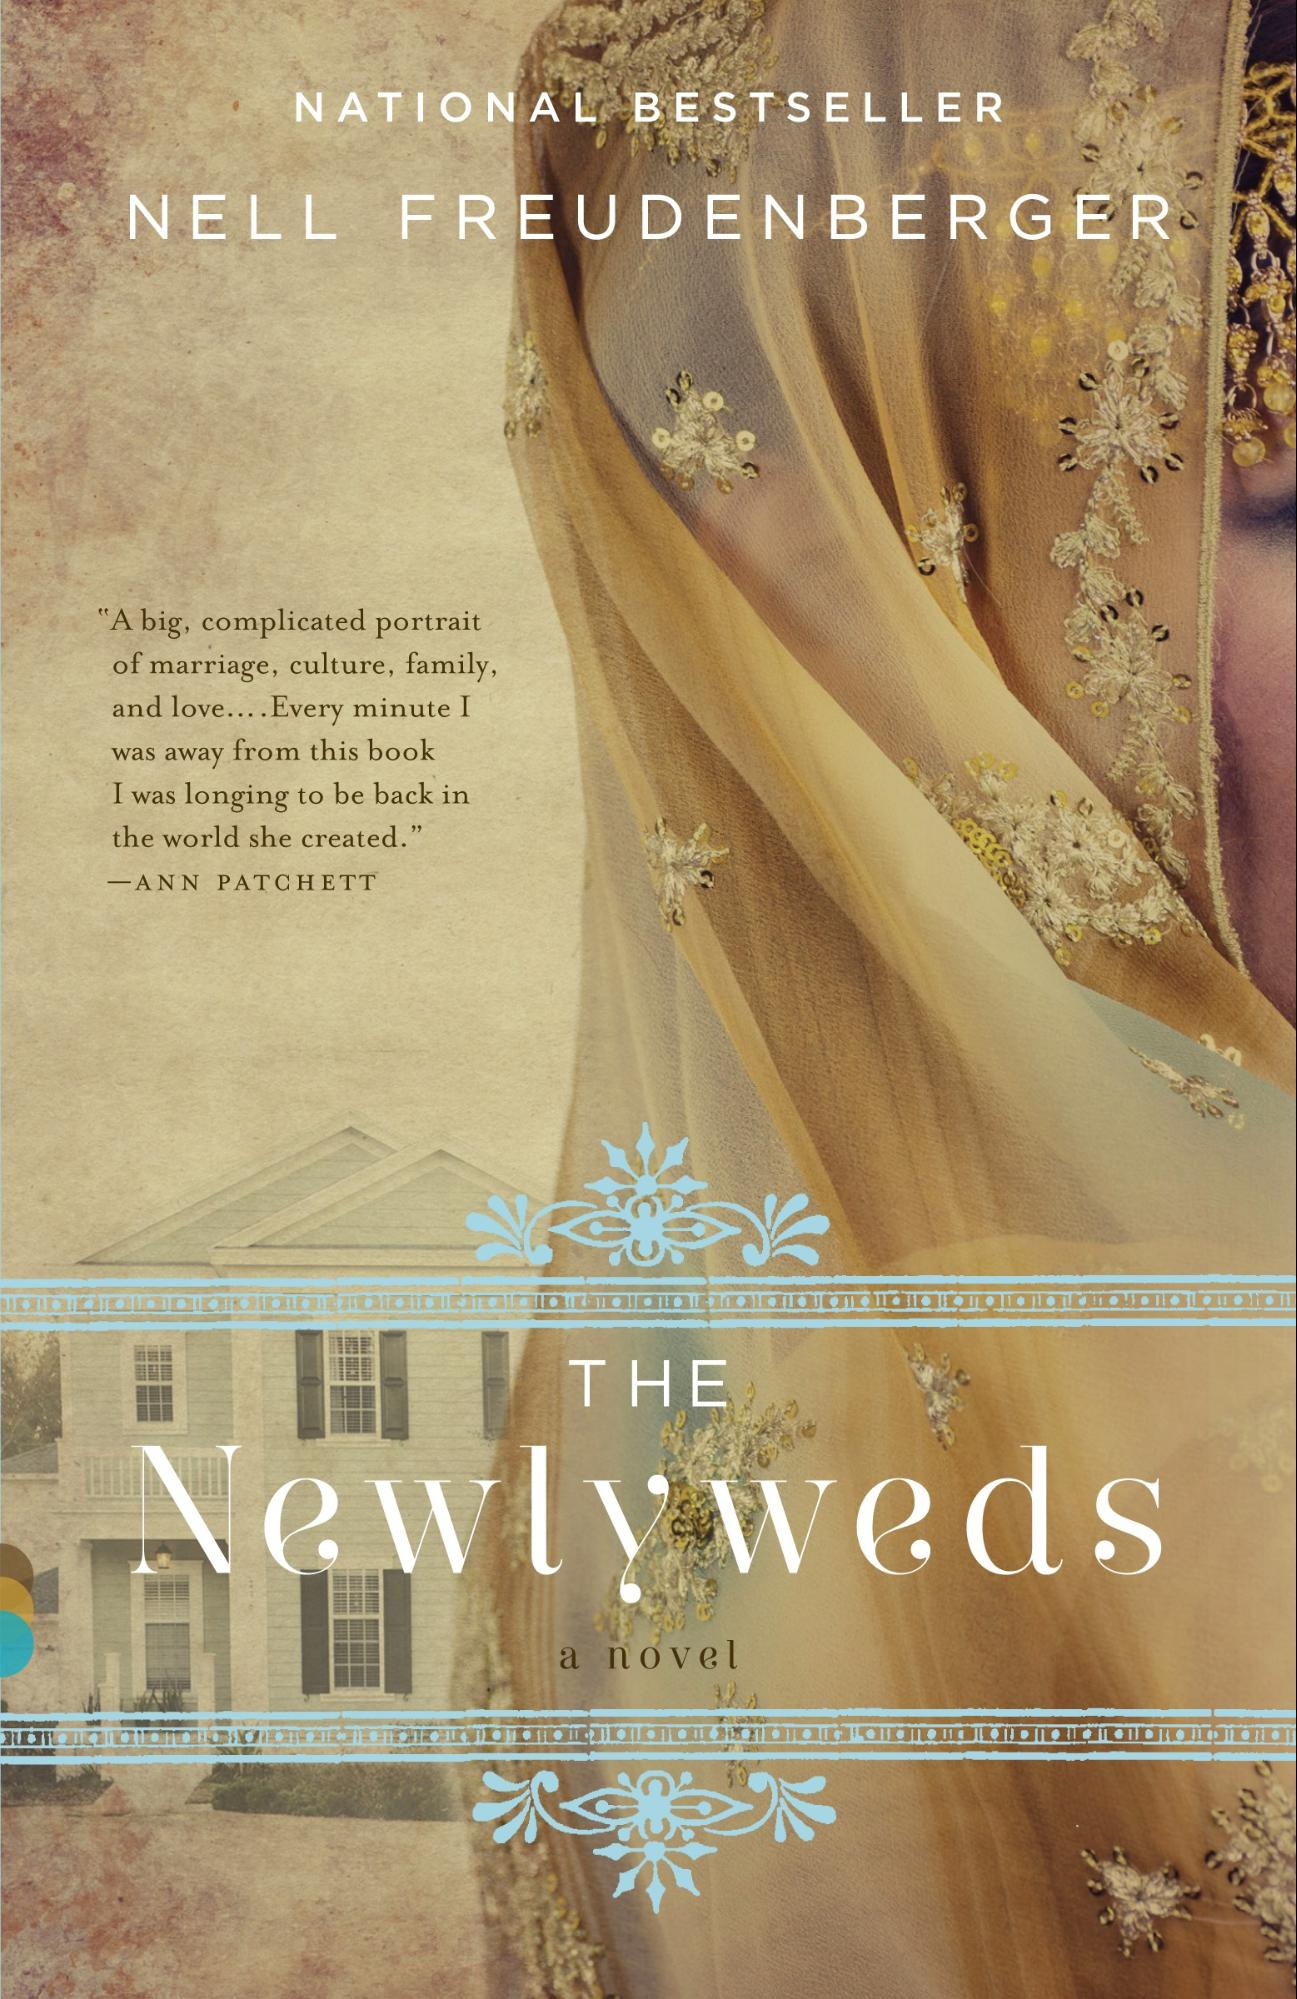 The Newlyweds book cover